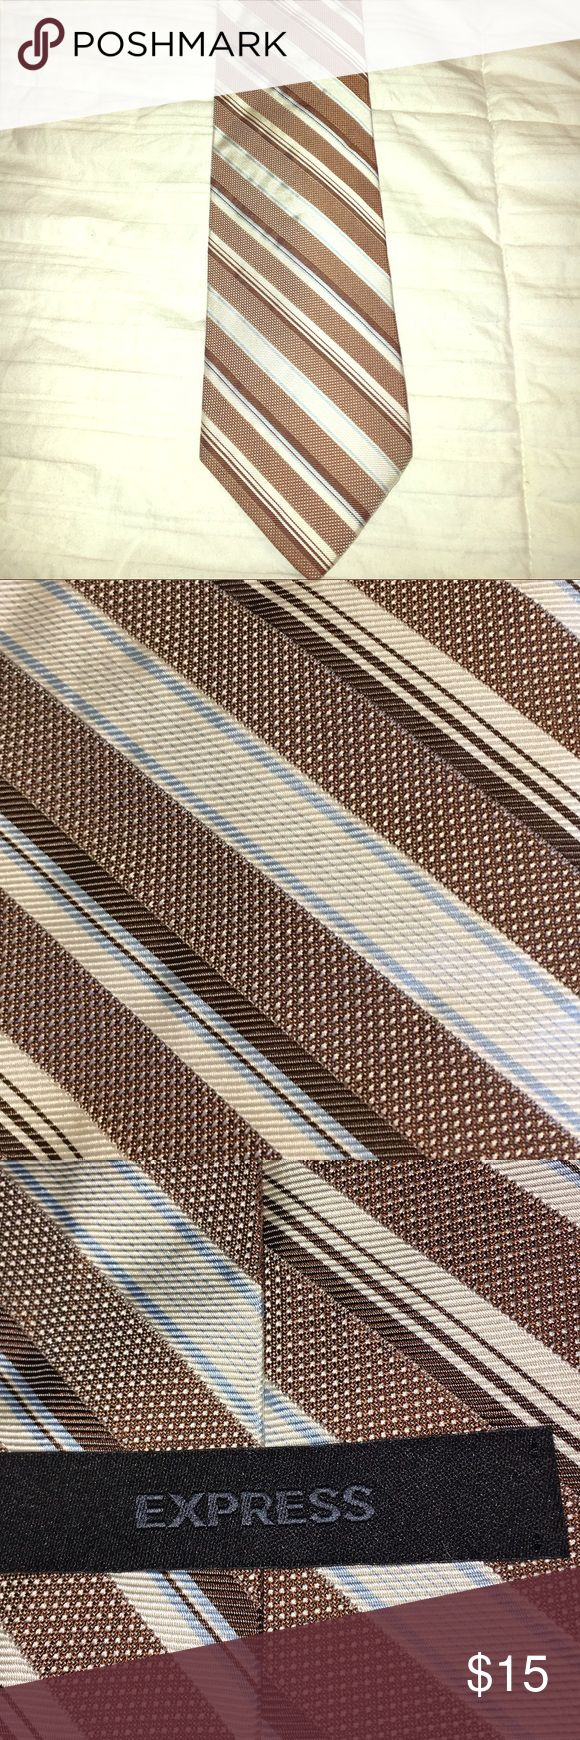 EXPRESS MEN striped tie Lightweight, striped tie in tan, white and light blue. Perfect addition to your spring tie collection Express Accessories Ties